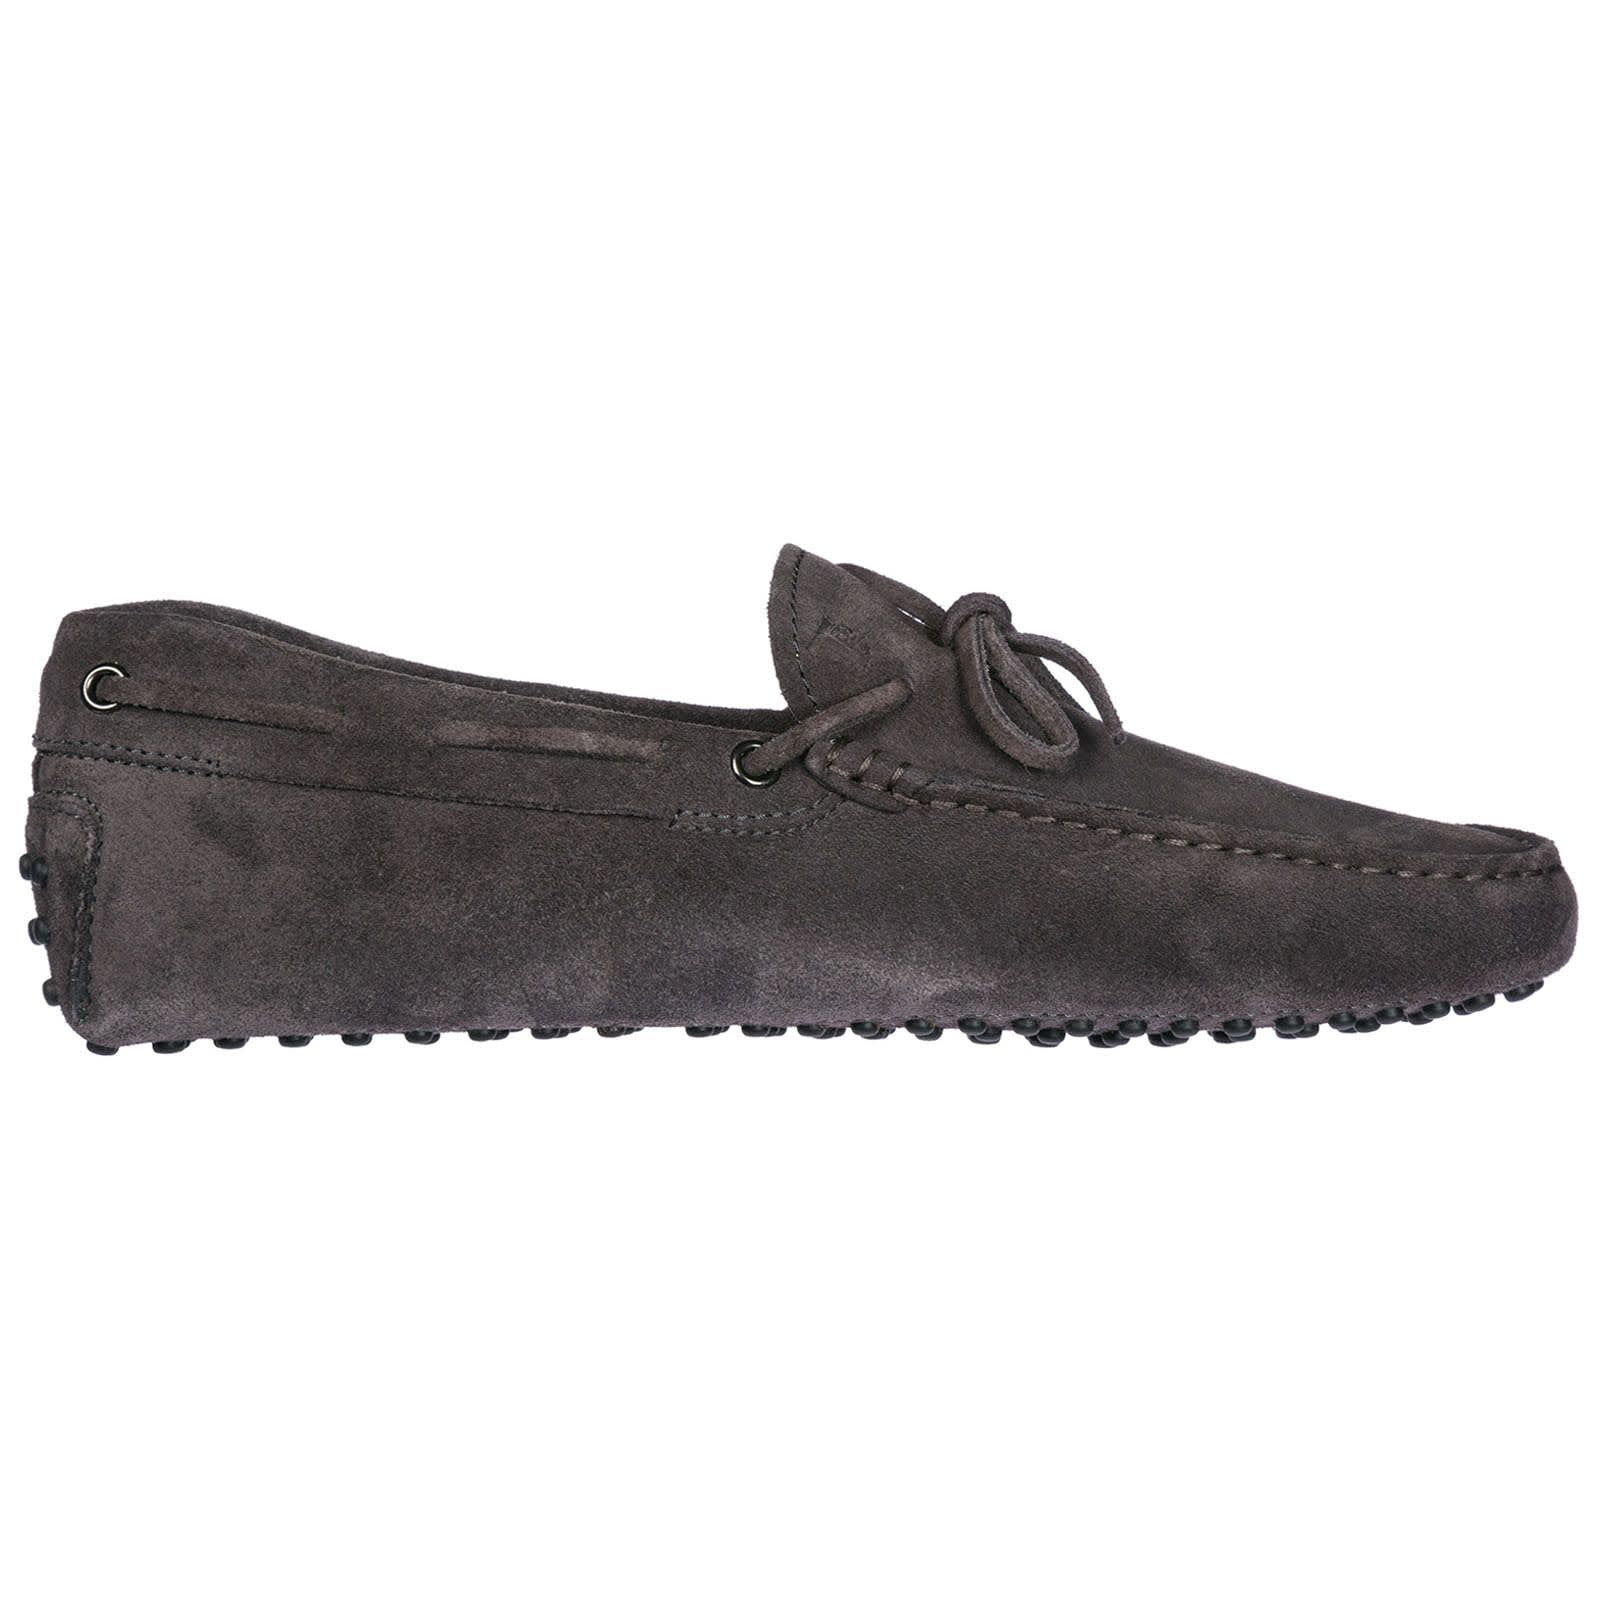 Pin on Tods shoes mens